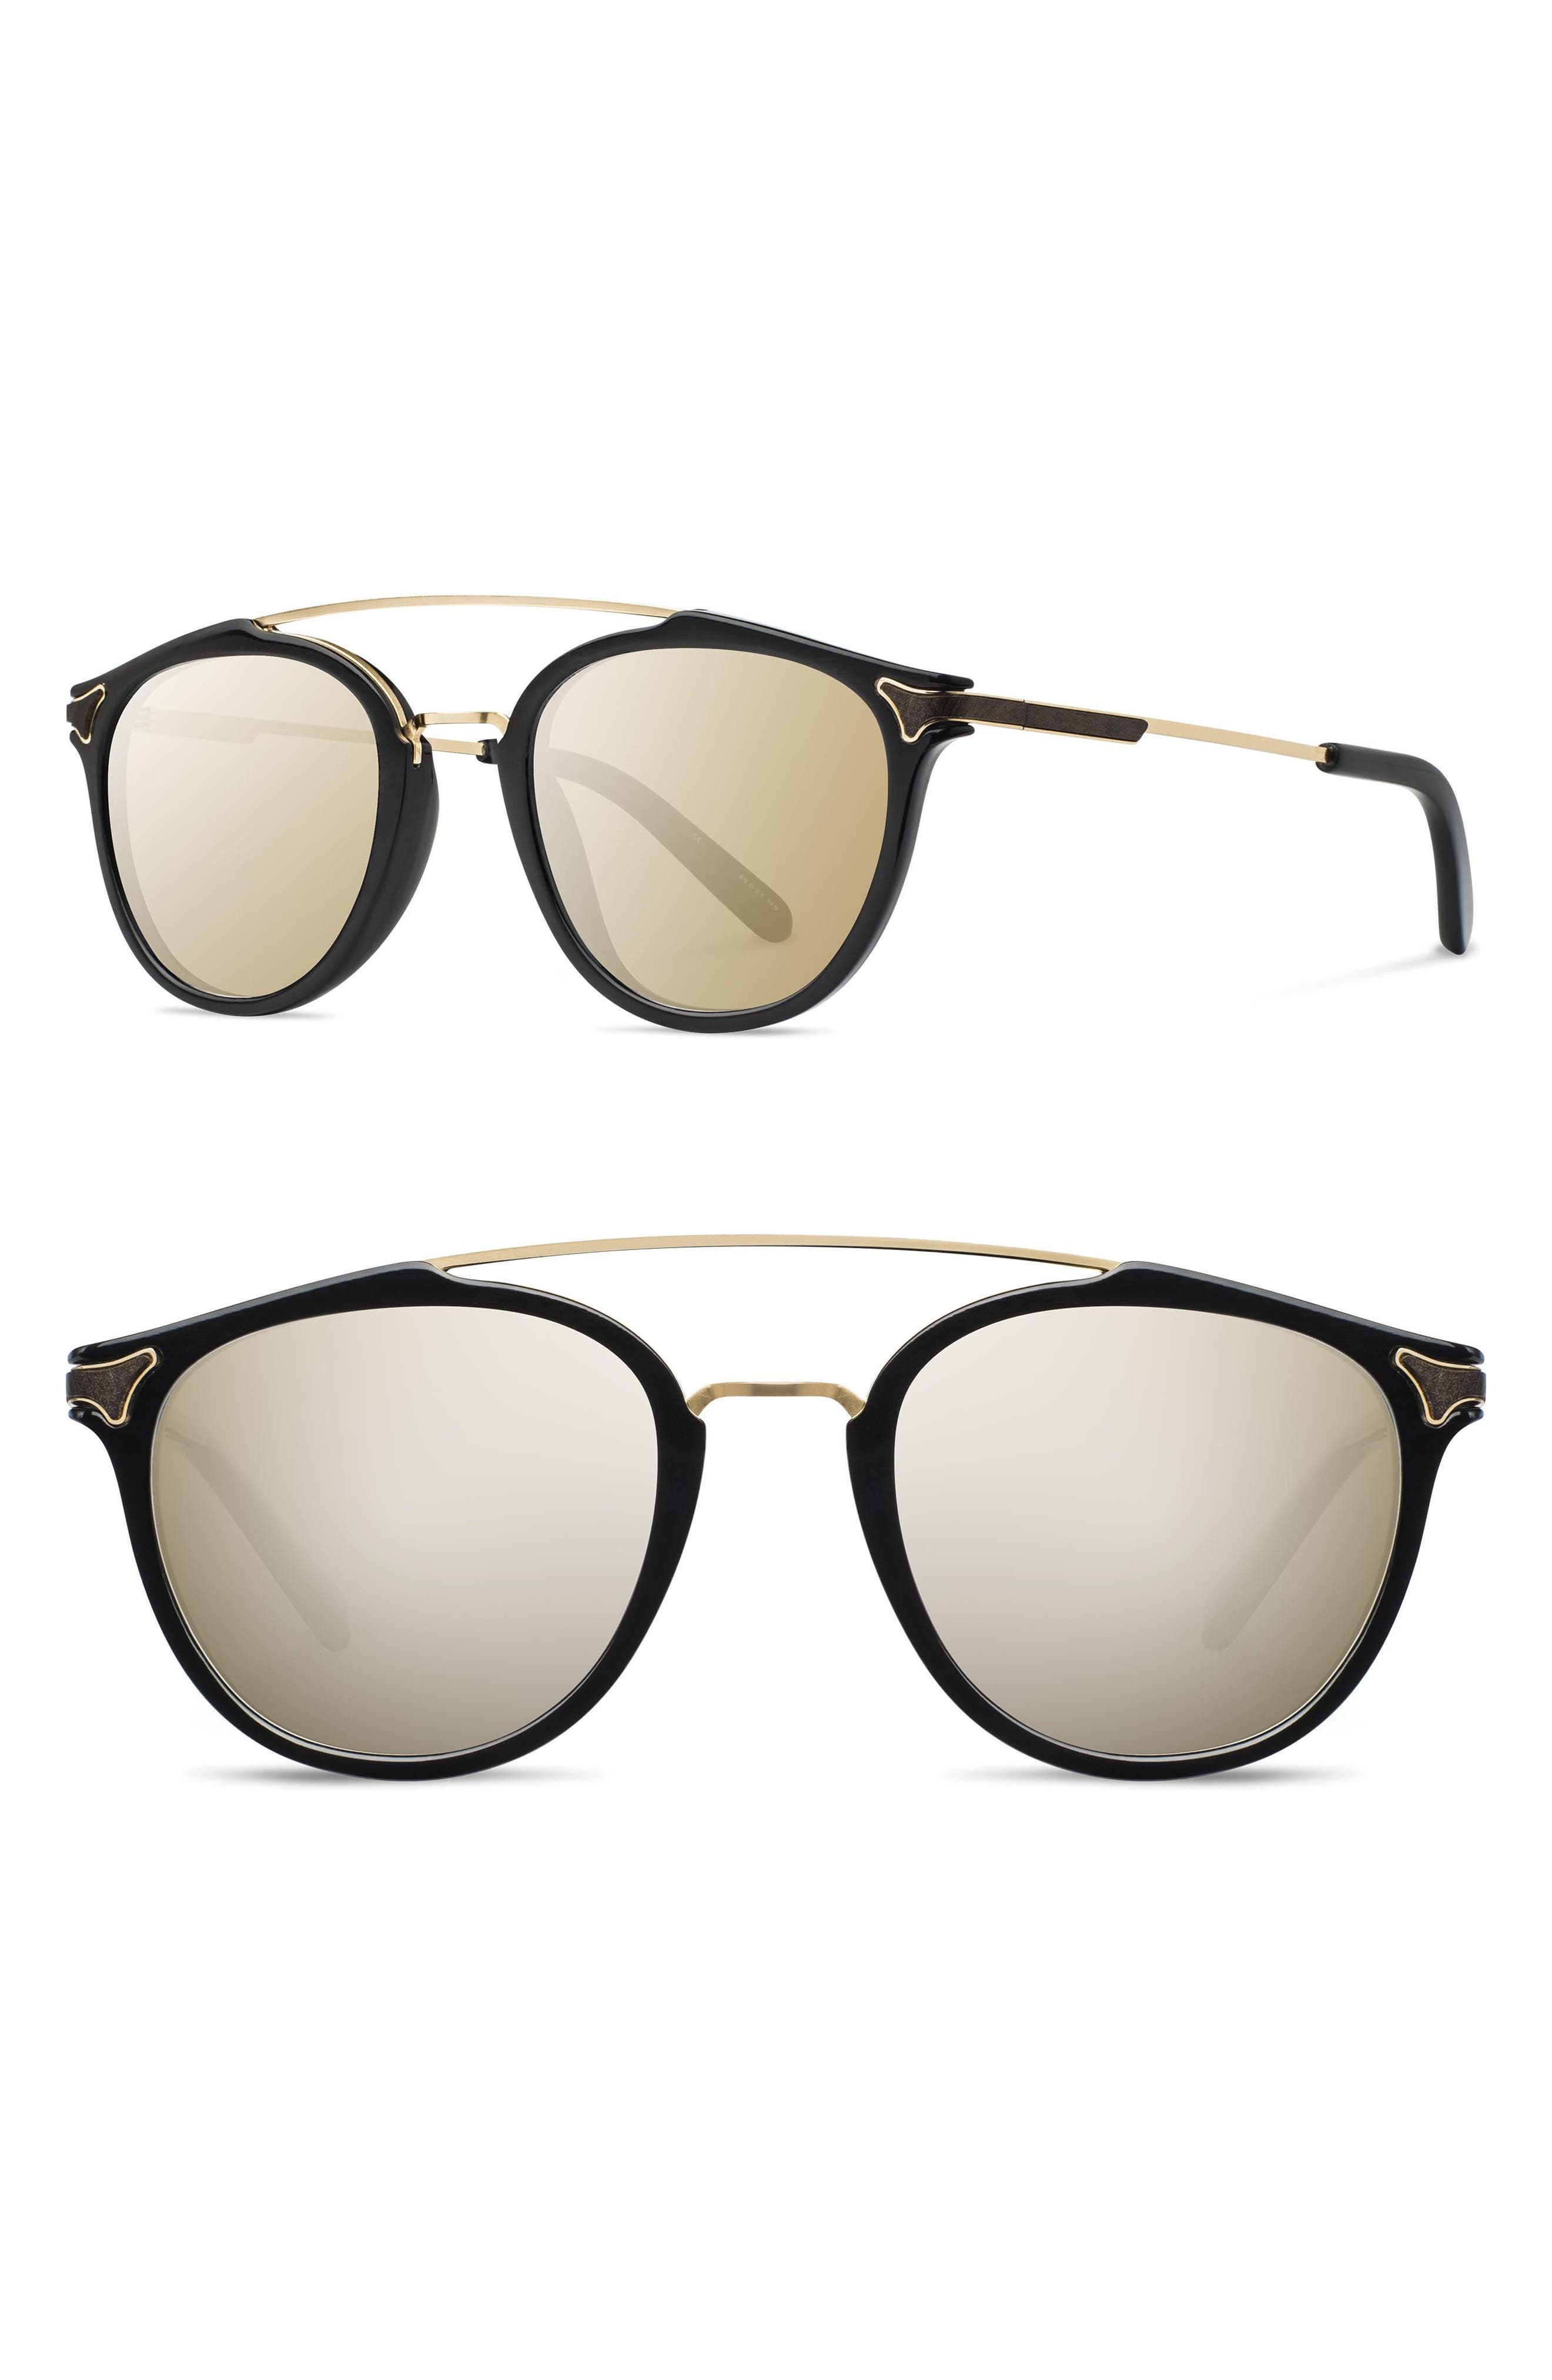 Kinsrow 49mm Acetate & Wood Sunglasses,                         Main,                         color, Black/ Gold Mirror